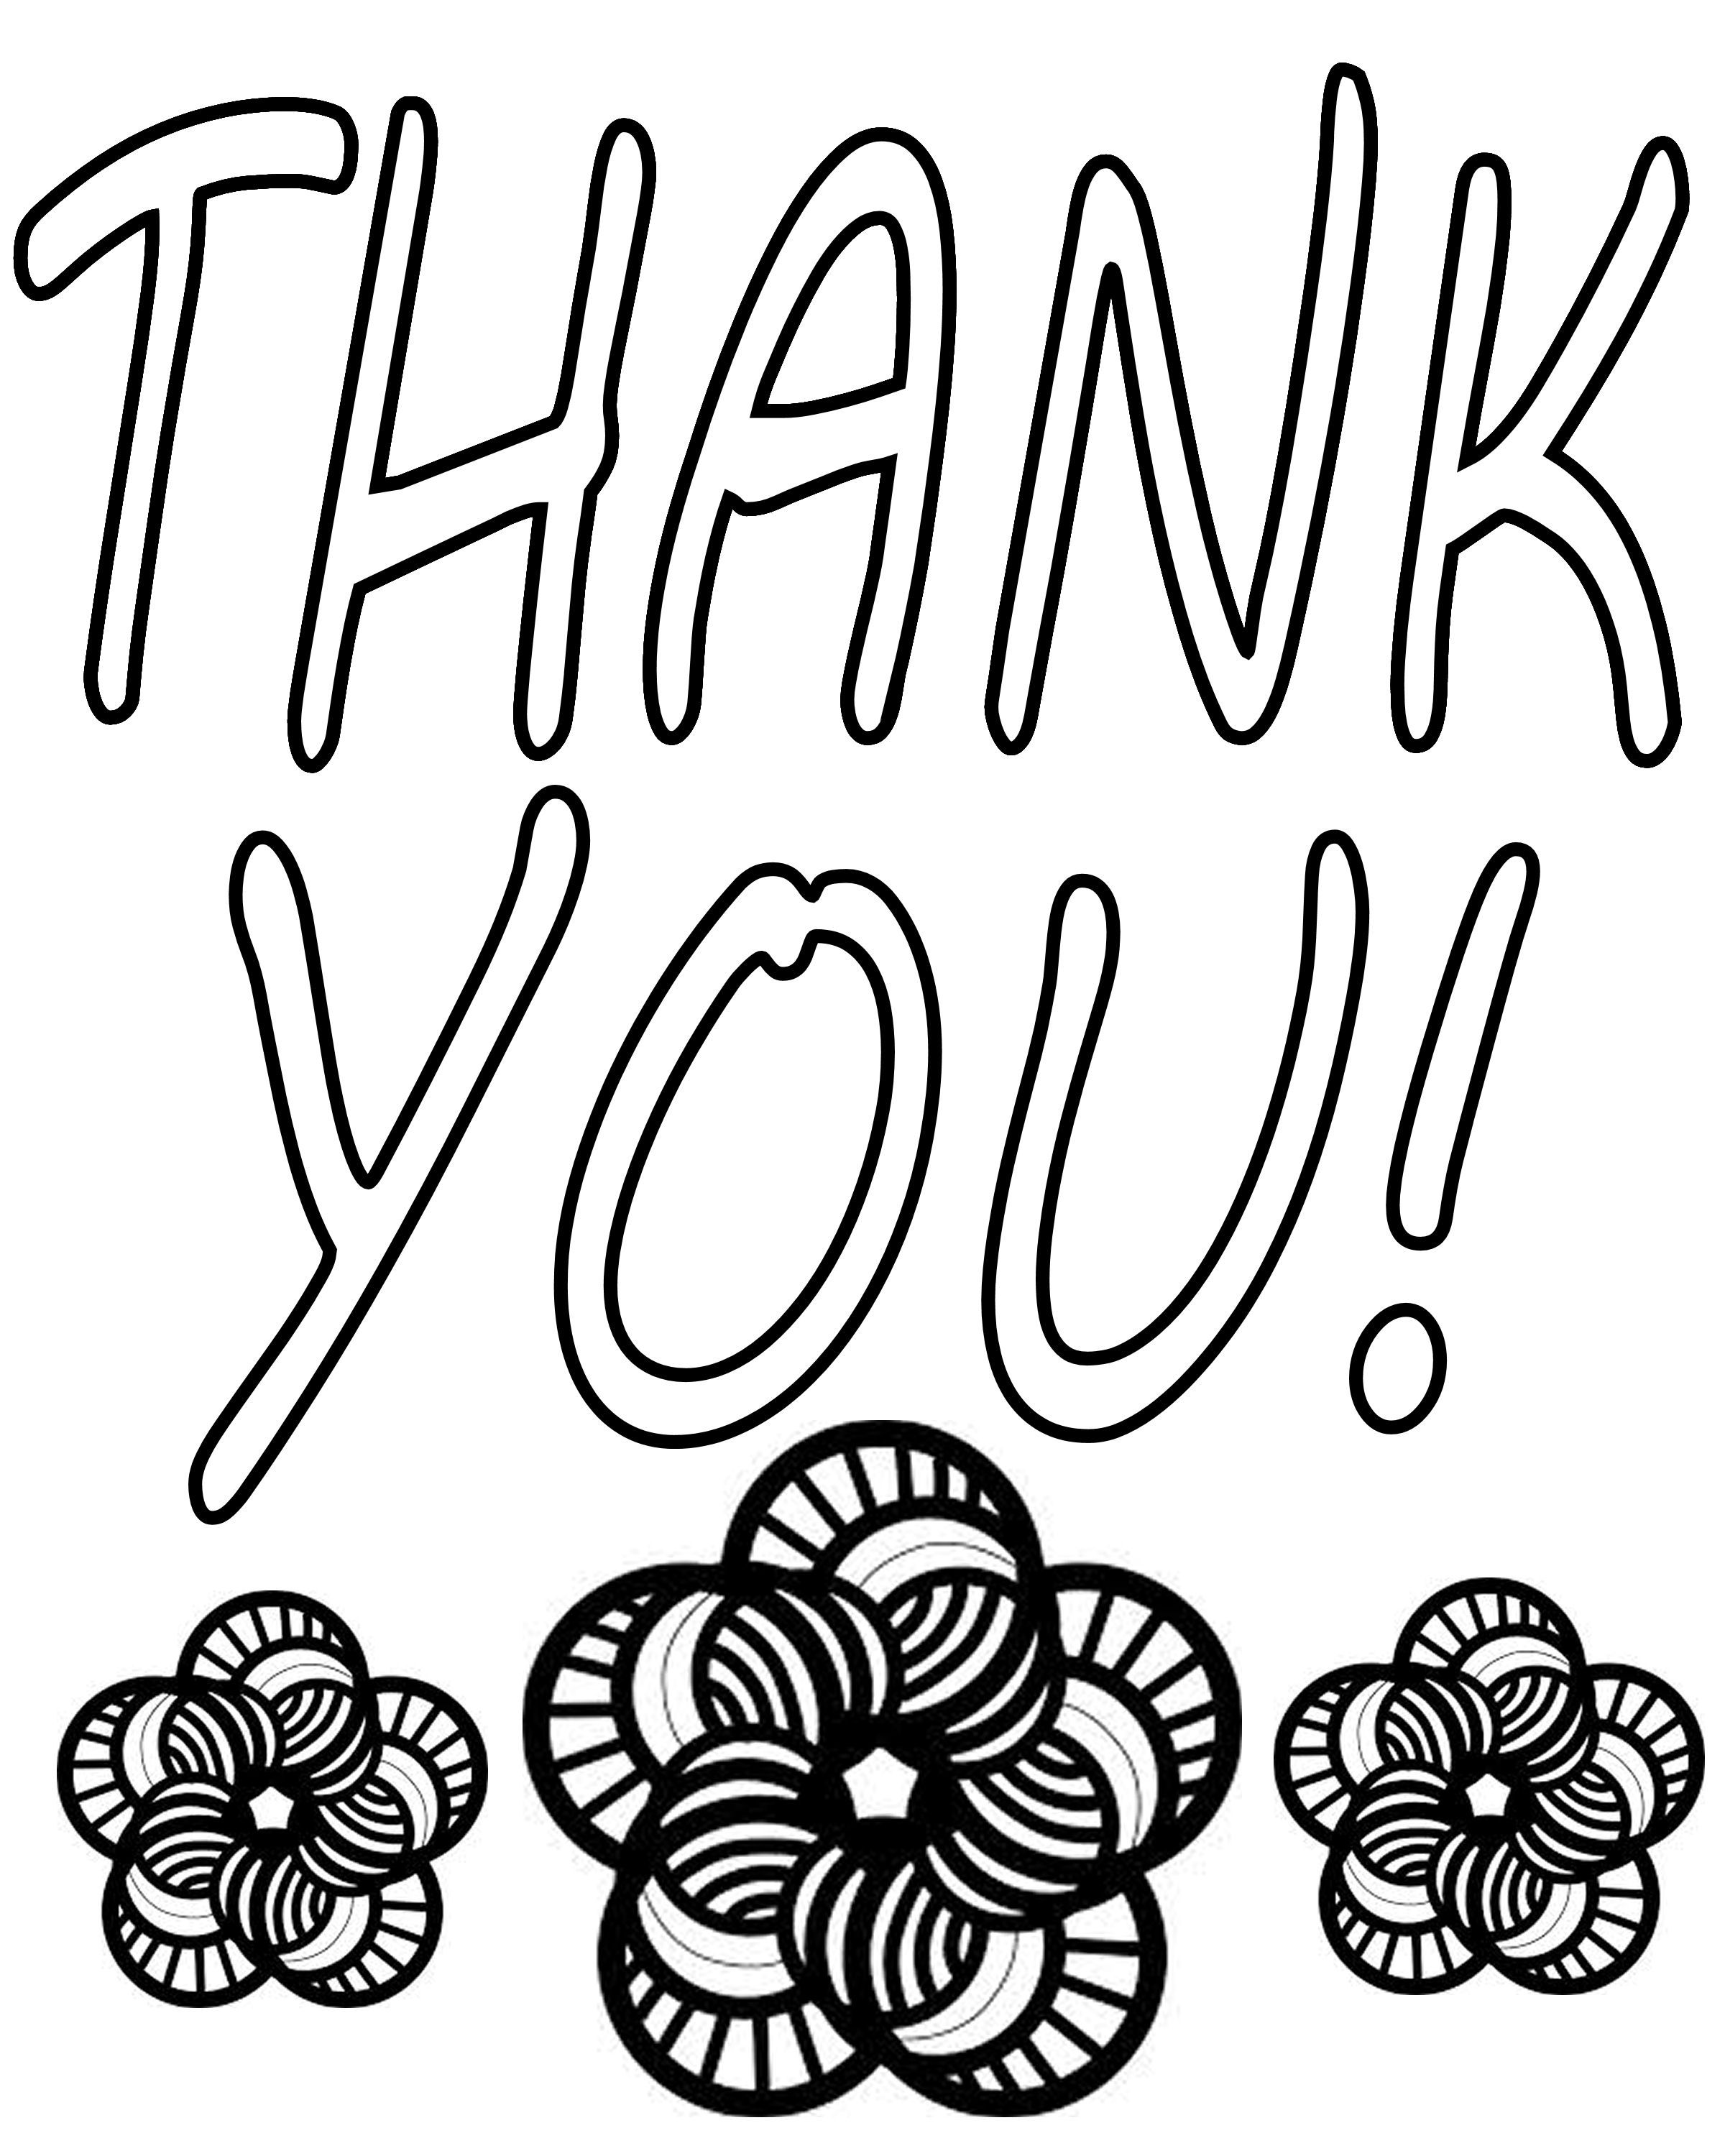 Thank You Coloring Pages Only Coloring Pages Heart Coloring Pages Coloring Pages For Kids Printable Coloring Pages